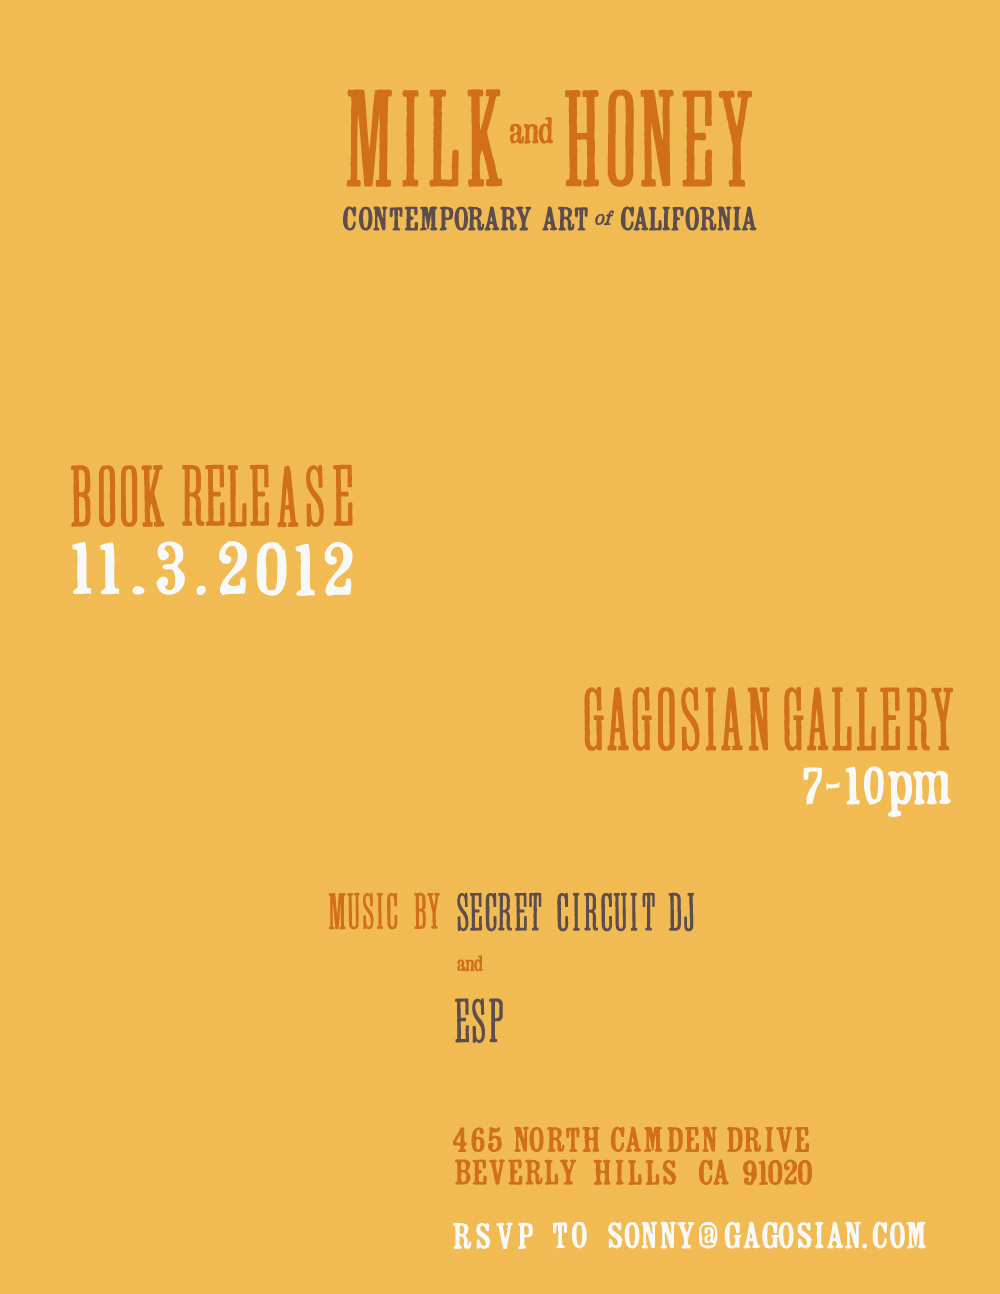 "Gagosian Gallery  in Los Angeles is hosting the book release party for  Milk and Honey: Contemporary Art in California  which features work not only by myself but also: Ed Ruscha, Steven Harrington, Richard Colman, Barry McGeee, Sage Vaughn, Megan Whitmarsh, Florencio Zavala, Ashley Snow Macomber, Andrew Shoultz, RETNA, Ed Templeton, Souther Salazar, Cleon Peterson and several others who call California home. Come out November 3rd! Most of us will be in attendance!    The book was written by  Justin Van Hoy  and you can now  purchase your copy .   Here's a bit about the book from the author: ""In the same spirit as Roger Gastman, Aaron Rose, and Jeffrey Deitch's recent seminal MOCA show: Art In The Streets, 'Milk and Honey' celebrates a group of contemporary artists with roots across various areas, including graffiti art, surf, and skate culture, and other uniquely californian influences. As is evident in that highly acclaimed museum show—as well as the current Pacific Standard Time show throughout los angeles—California affects trends and sets the stage nationally and internationally, for some of the most creative art being made in the world today."""